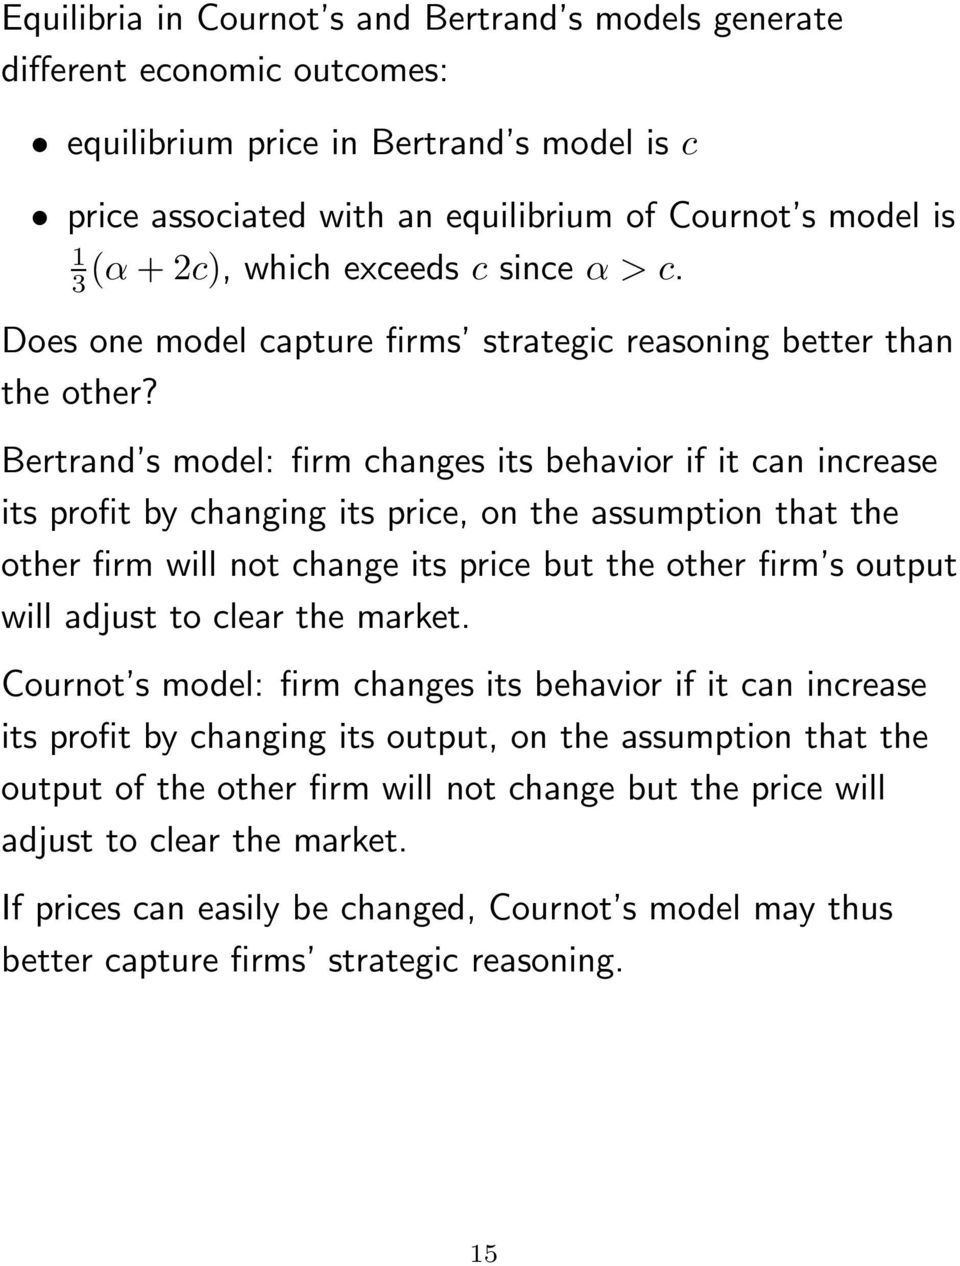 Bertrand s model: firm changes its behavior if it can increase its profit by changing its price, on the assumption that the other firm will not change its price but the other firm s output will